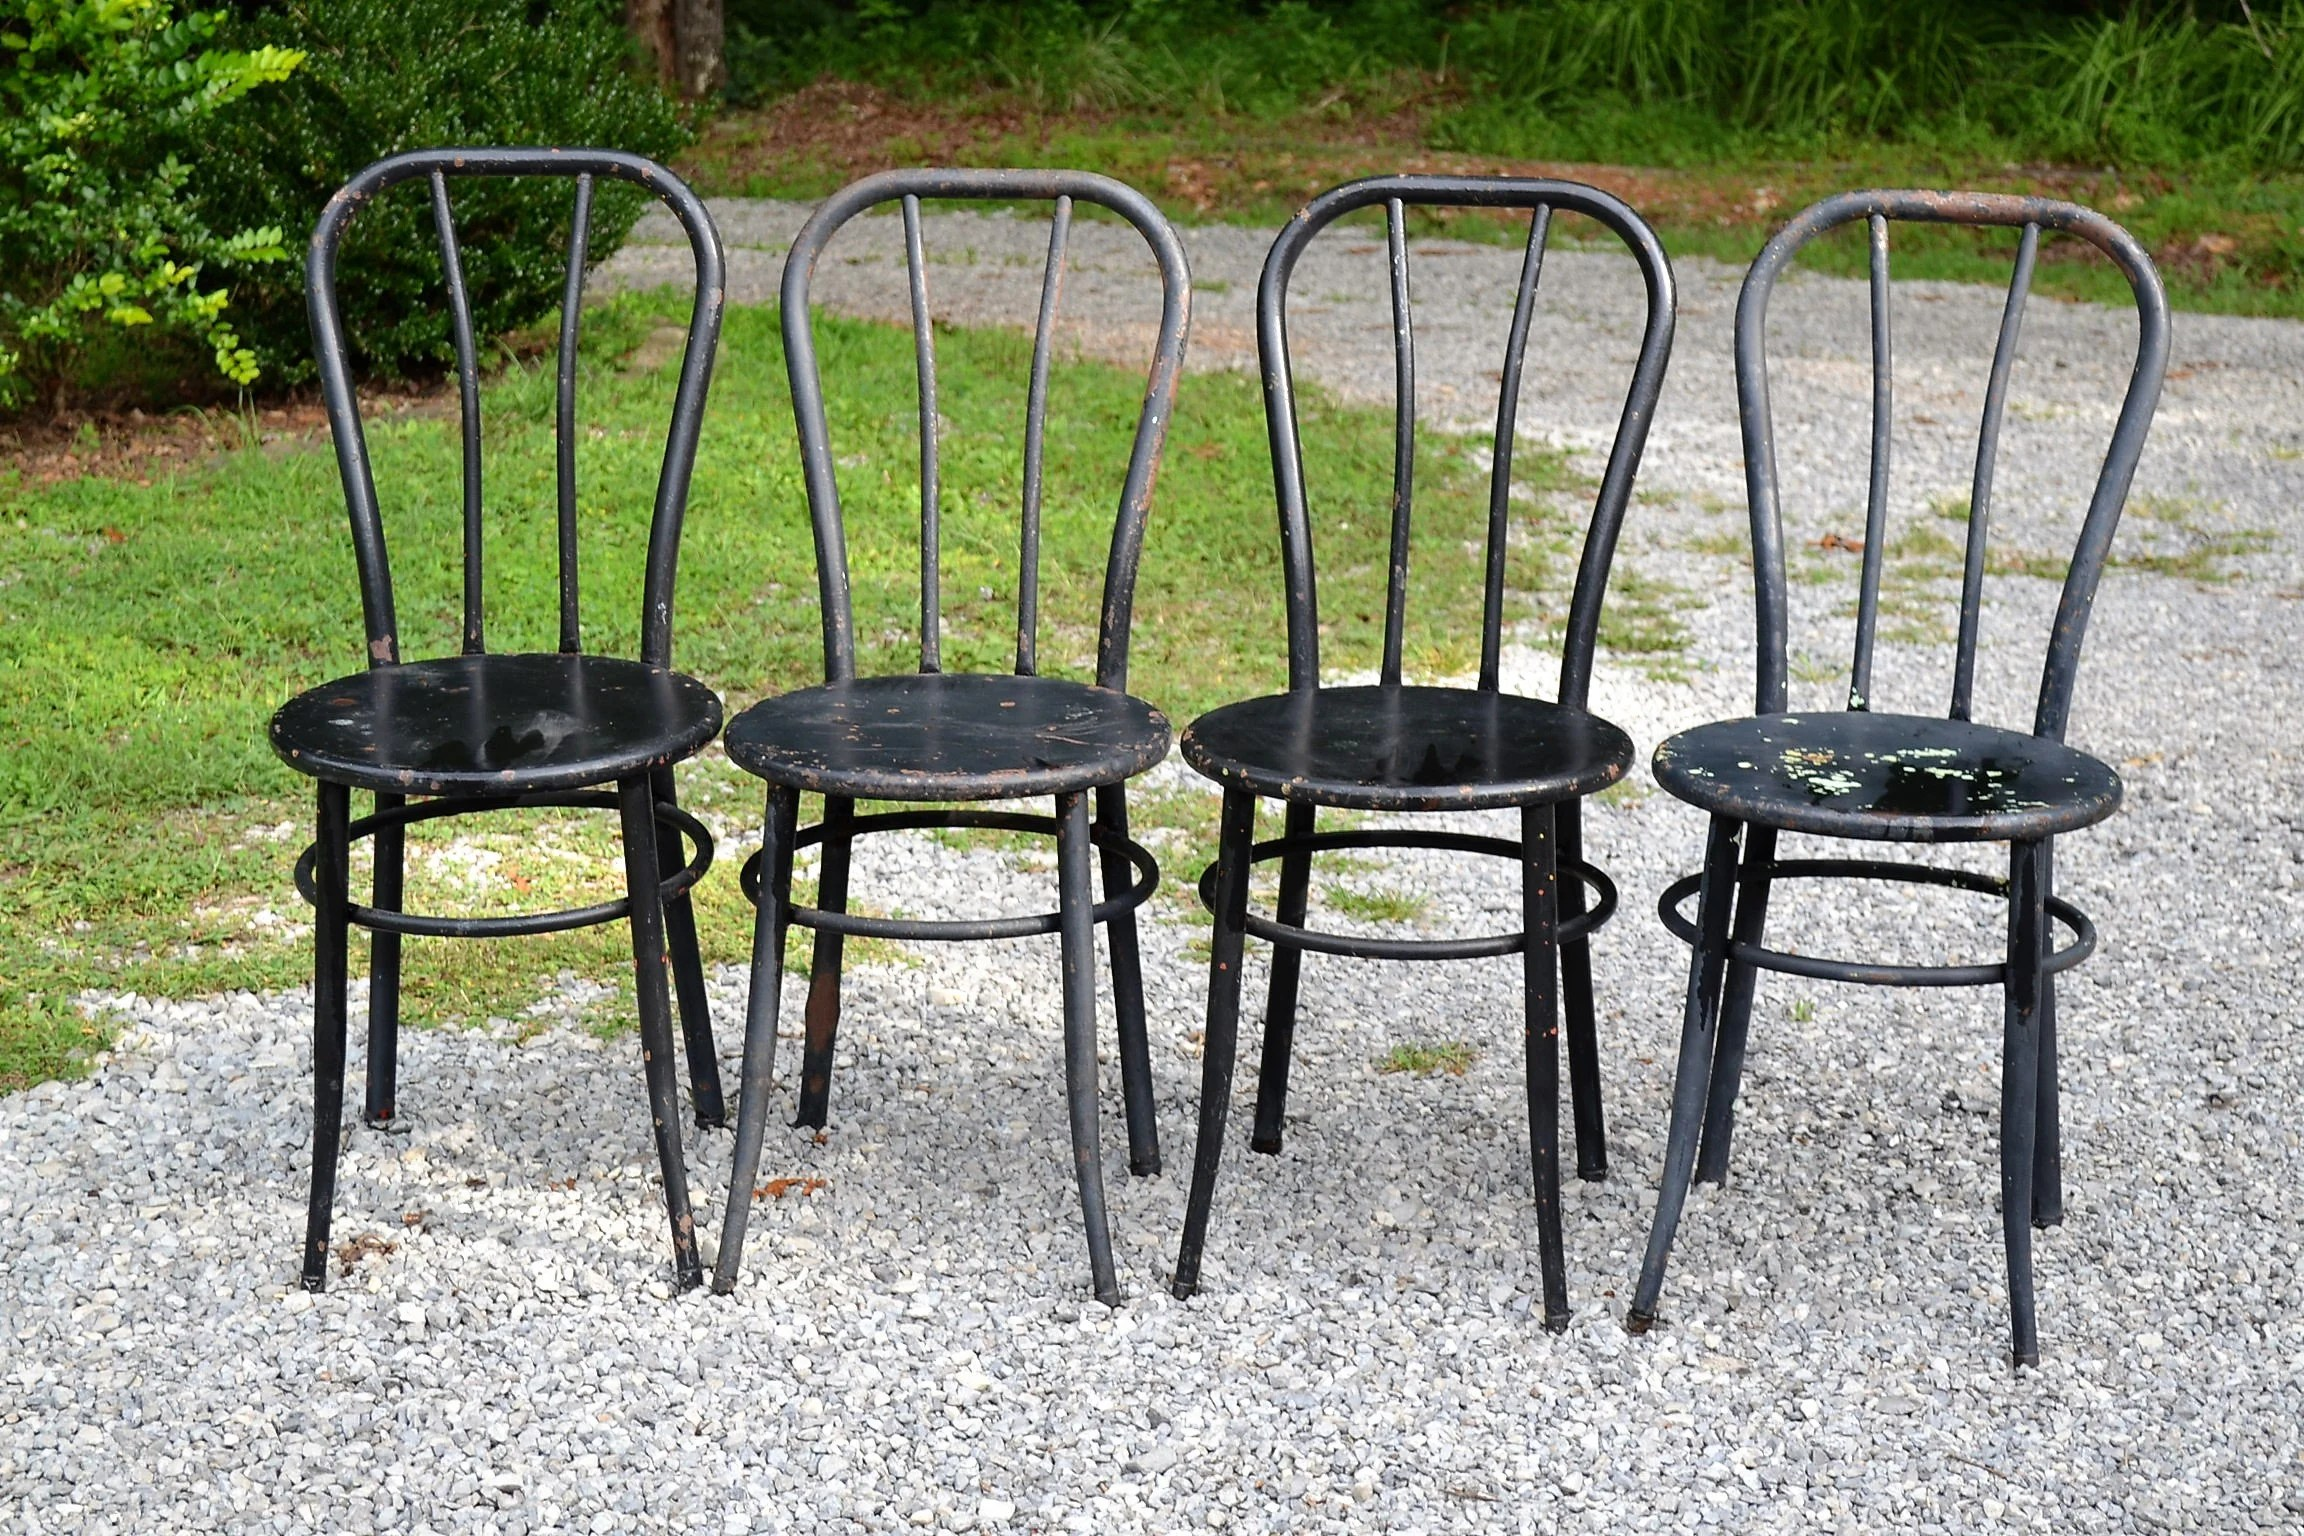 green metal bistro chairs resin wicker chair vintage set of 4 black chippy paint old etsy image 0